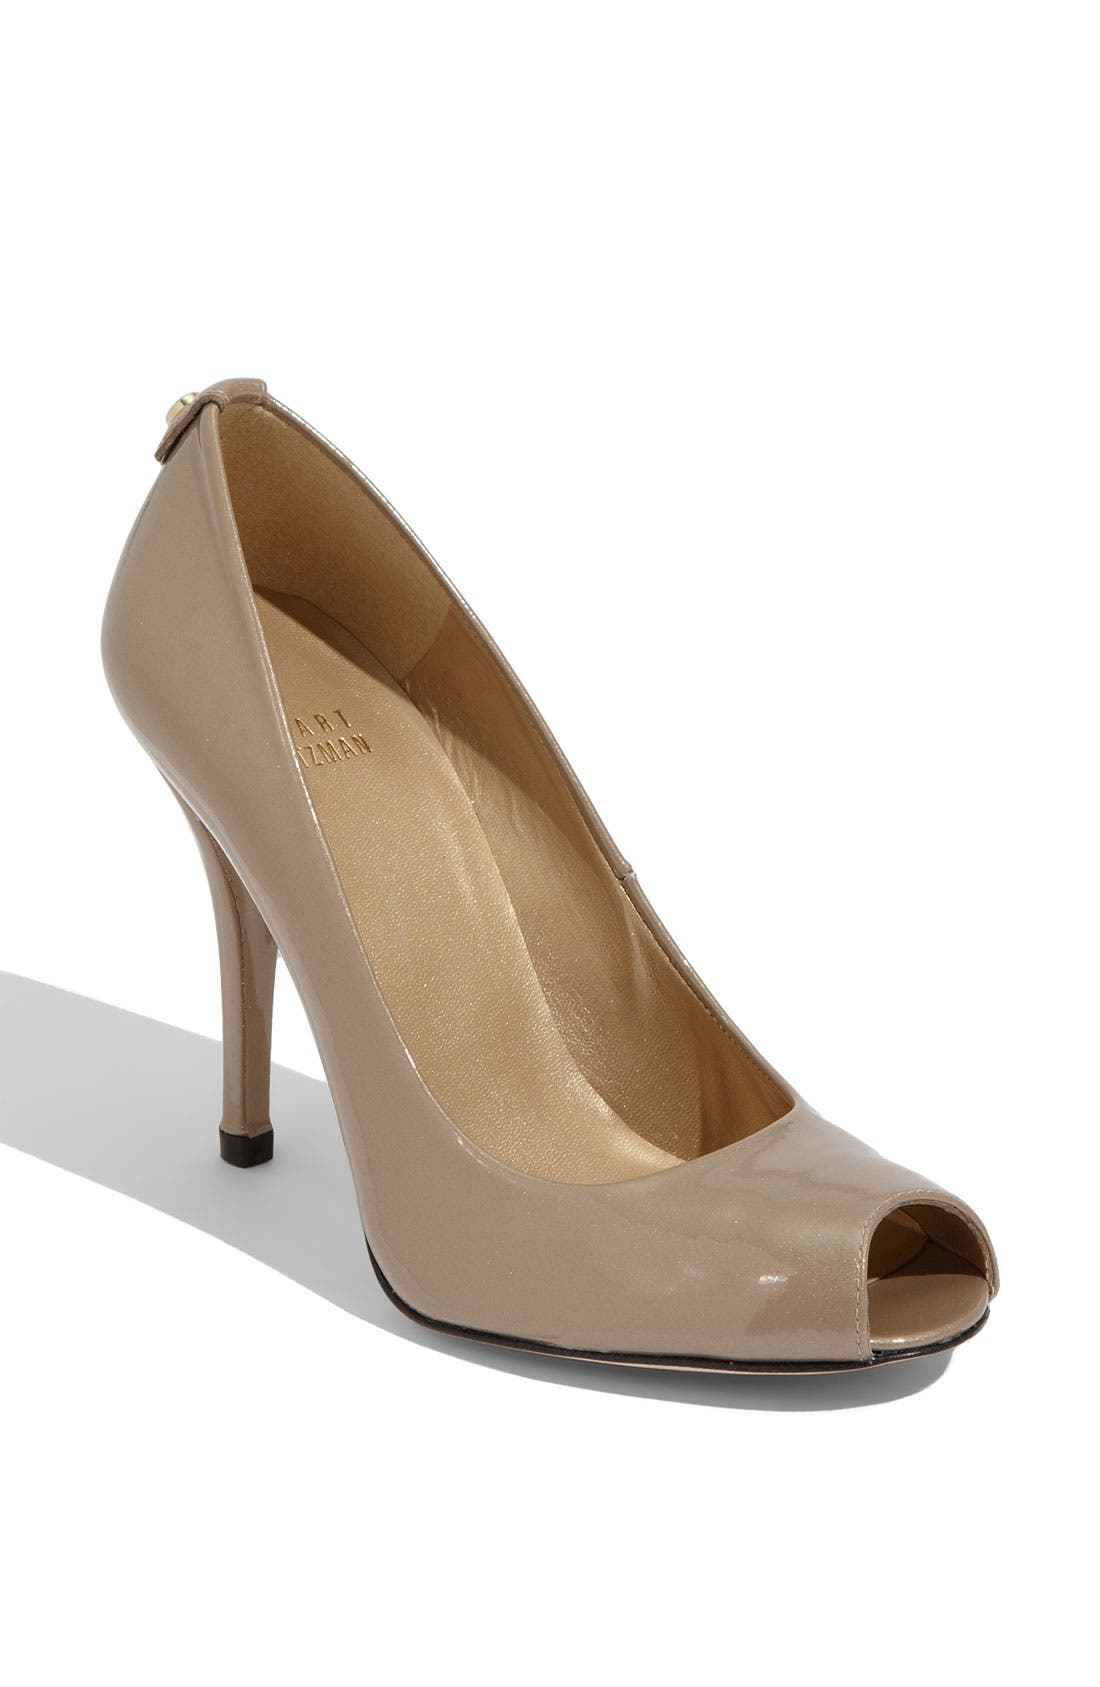 Alternate Image 1 Selected - Stuart Weitzman 'Logoflame' Pump